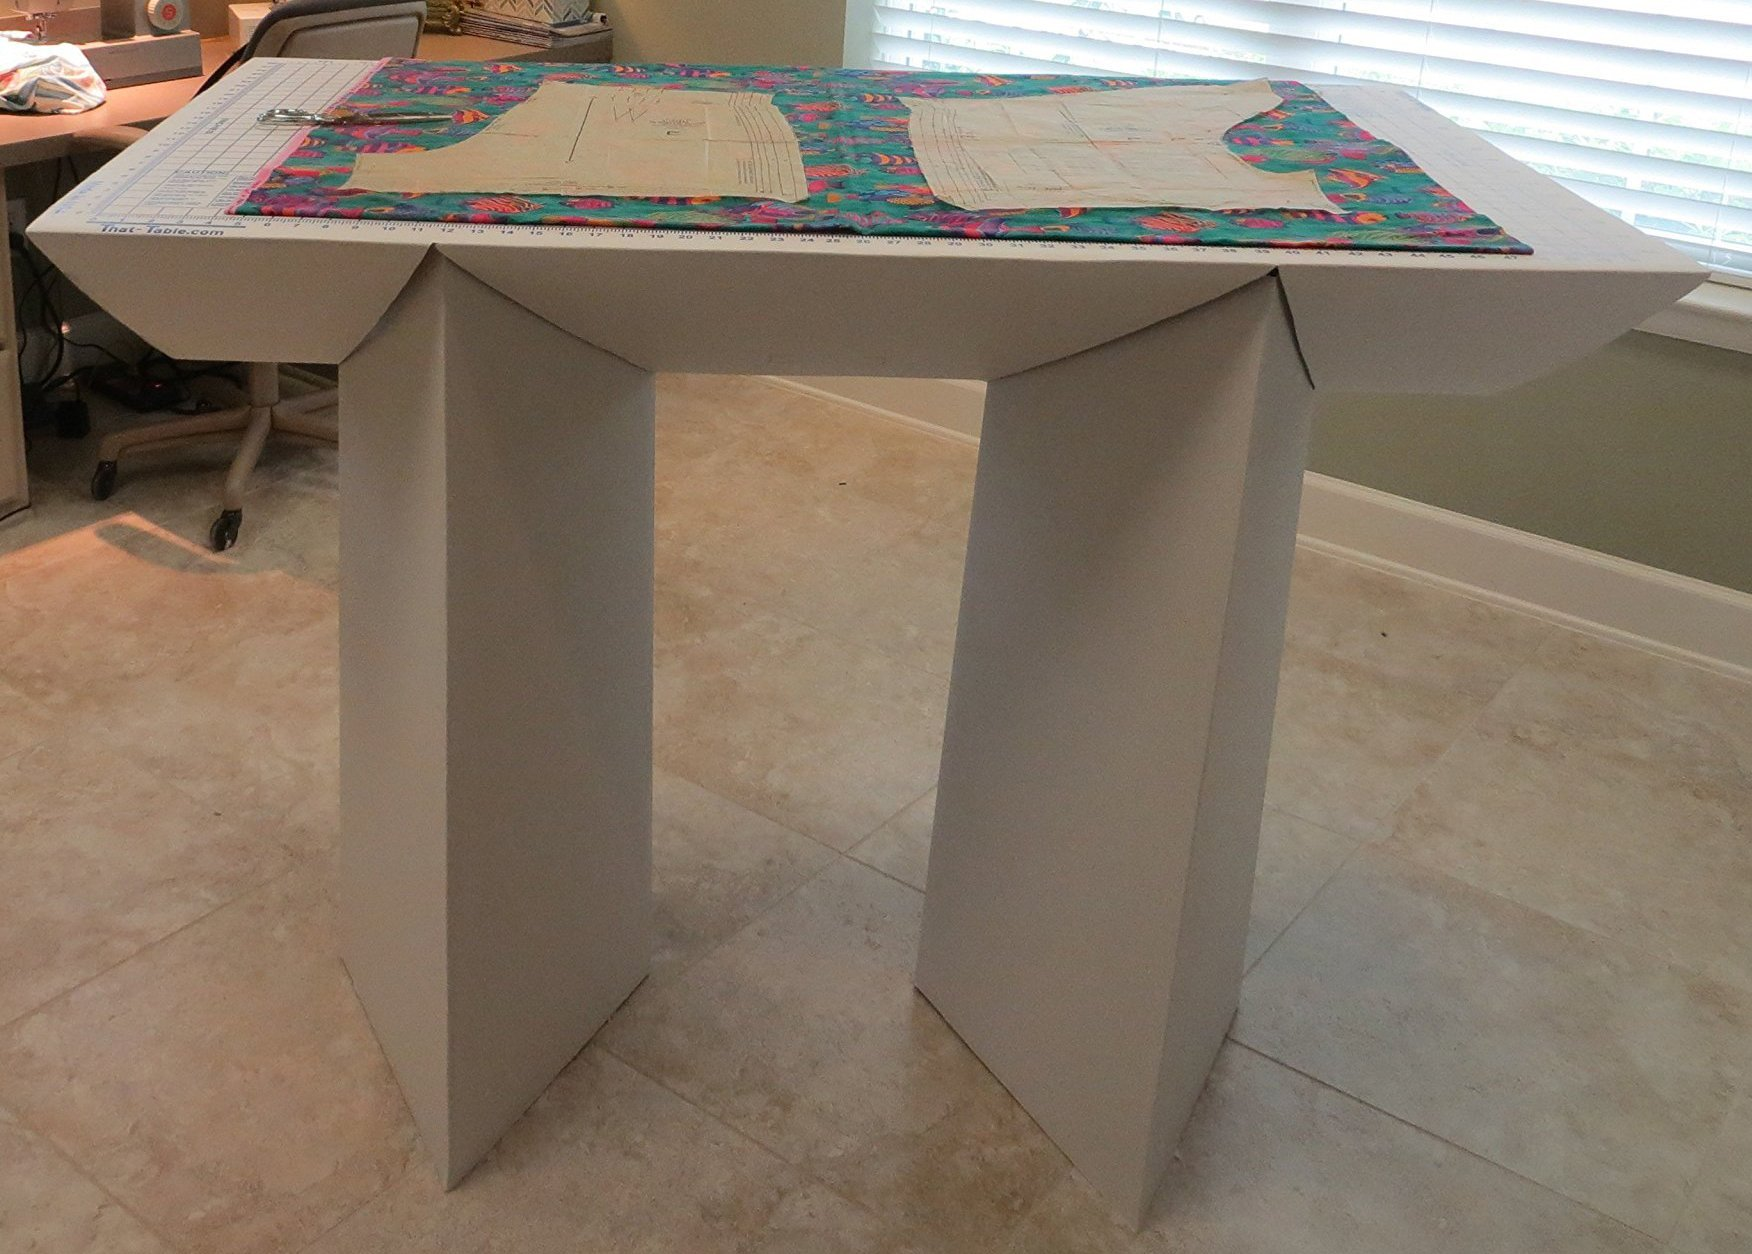 That-Table Flat-Top, Fold-Away, Counter Height, Fabric Cutting Board & Multi-Purpose Table, 55'' L x 32'' W